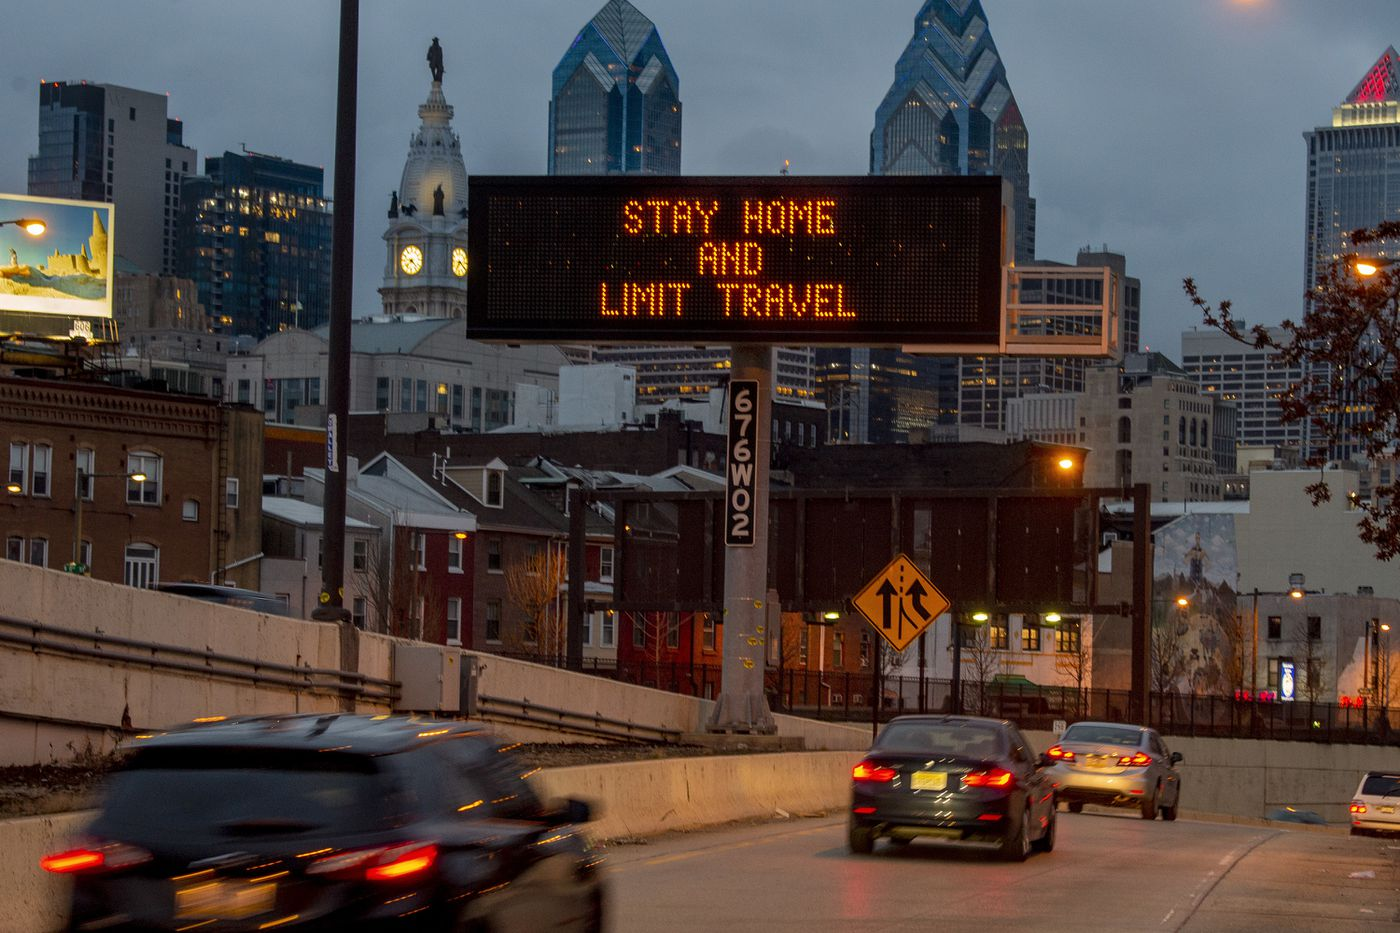 A sign at the 8th Street ramp to westbound I-676 (Vine Street Expressway) Mar. 22, 2020 reflect Philadelphia's order that all residents stay in their homes except when engaging in life-sustaining activities beginning at 8 a.m. Monday because of the coronavirus crisis.